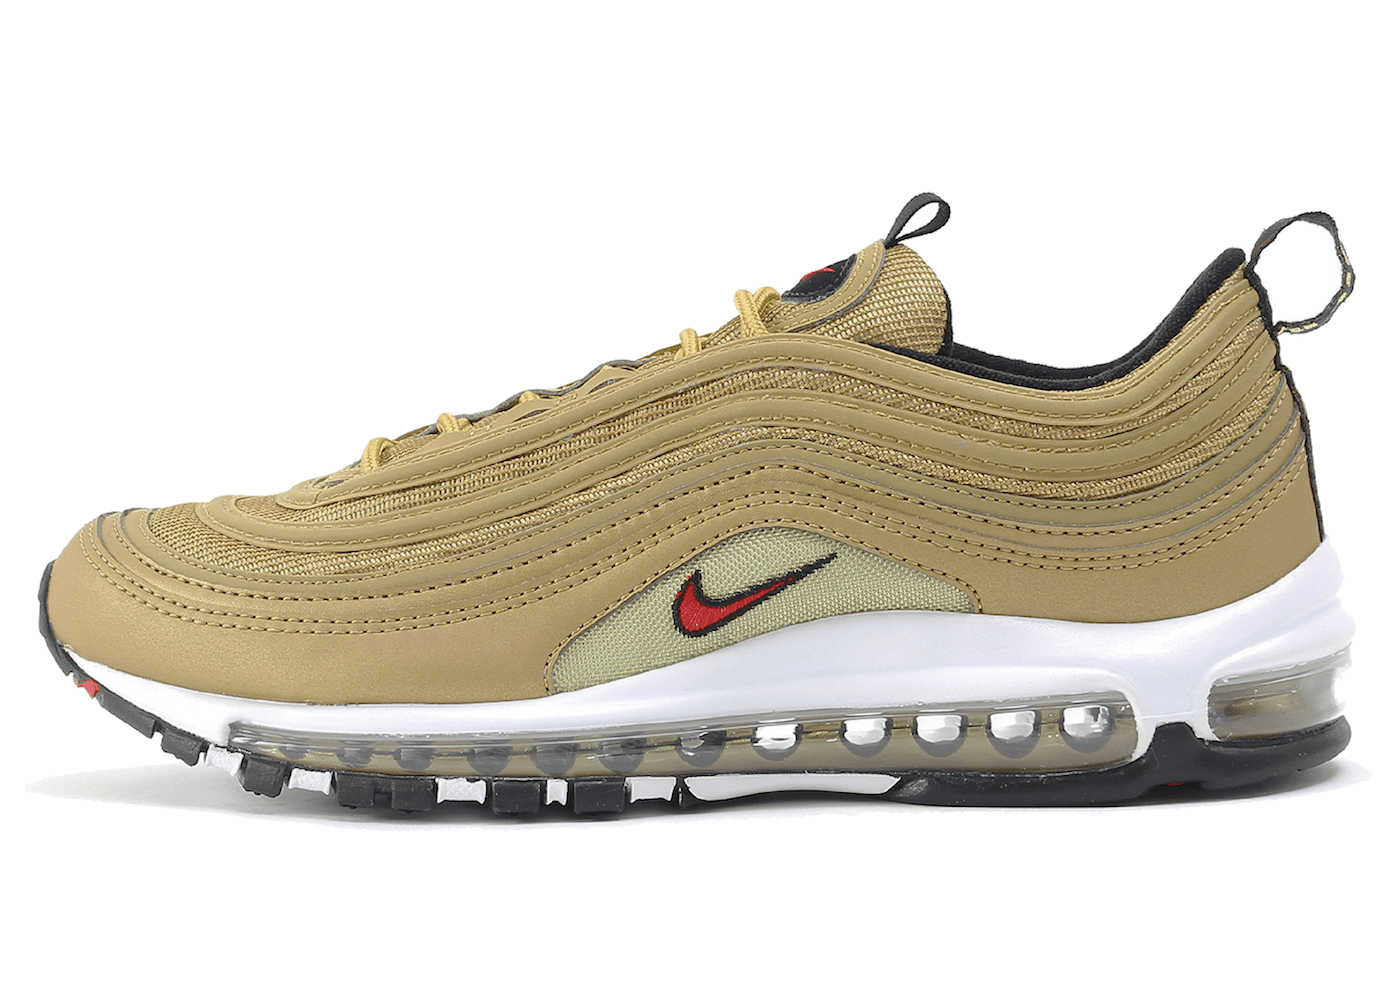 Air Max 97 Metallic Gold (2017)の写真